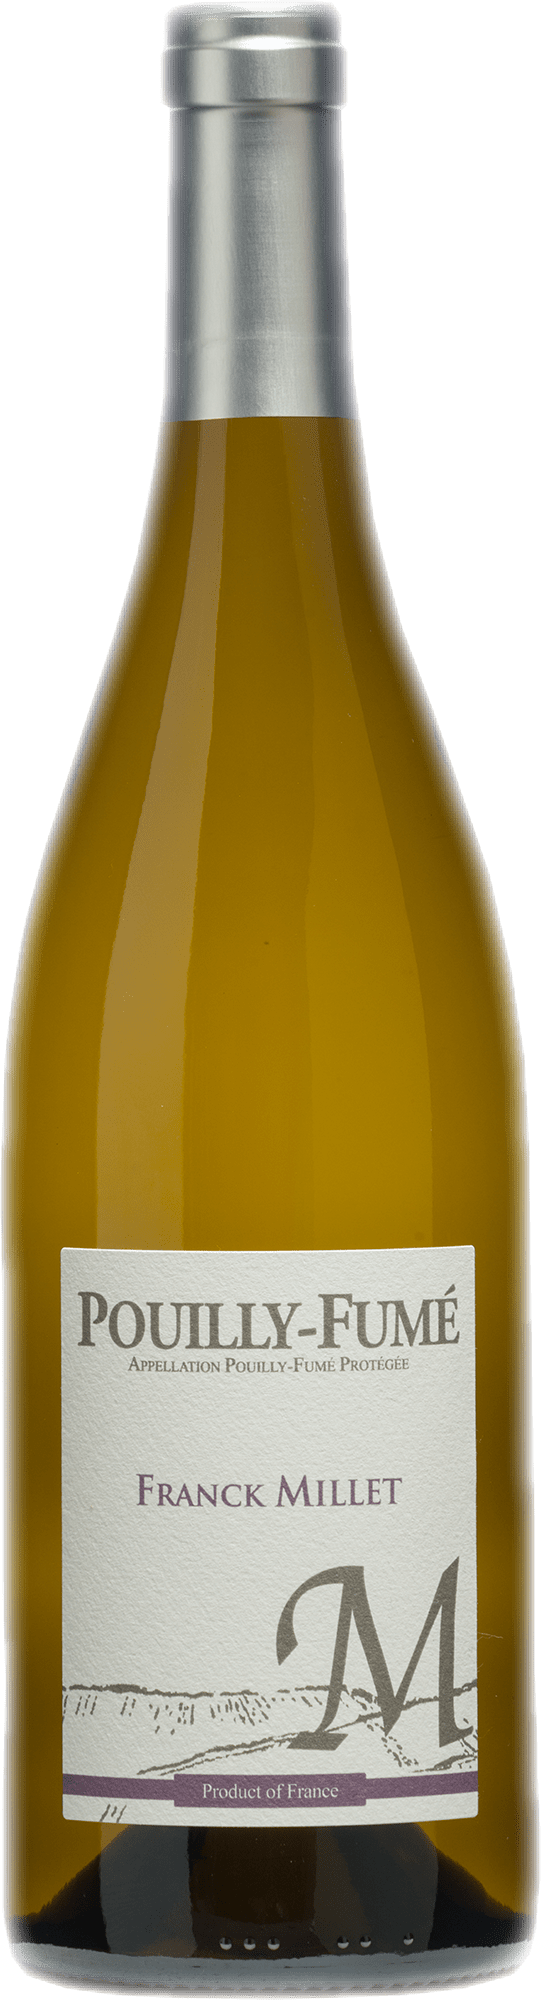 International Wines Wine Domaine Franck Millet Pouilly-Fume